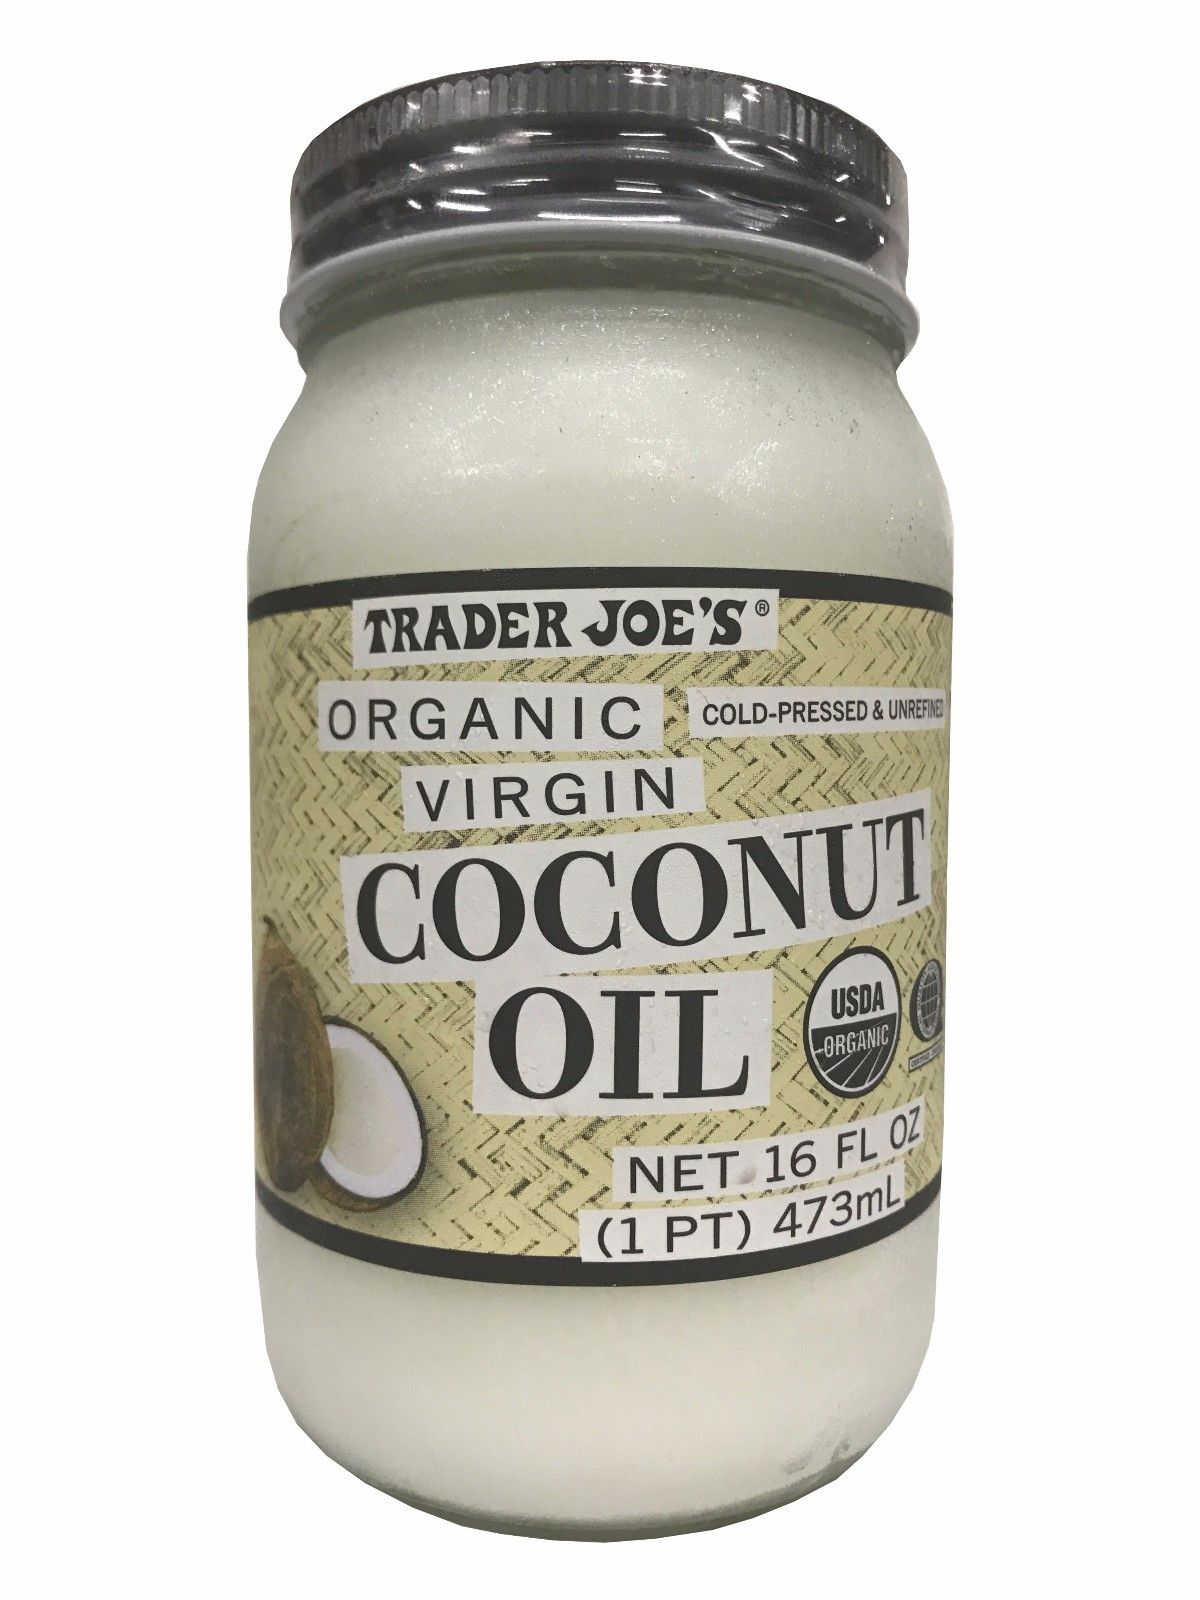 Trader Joe's Organic Virgin Coconut Oil Cold-pressed & Unrefined 16 FL OZ